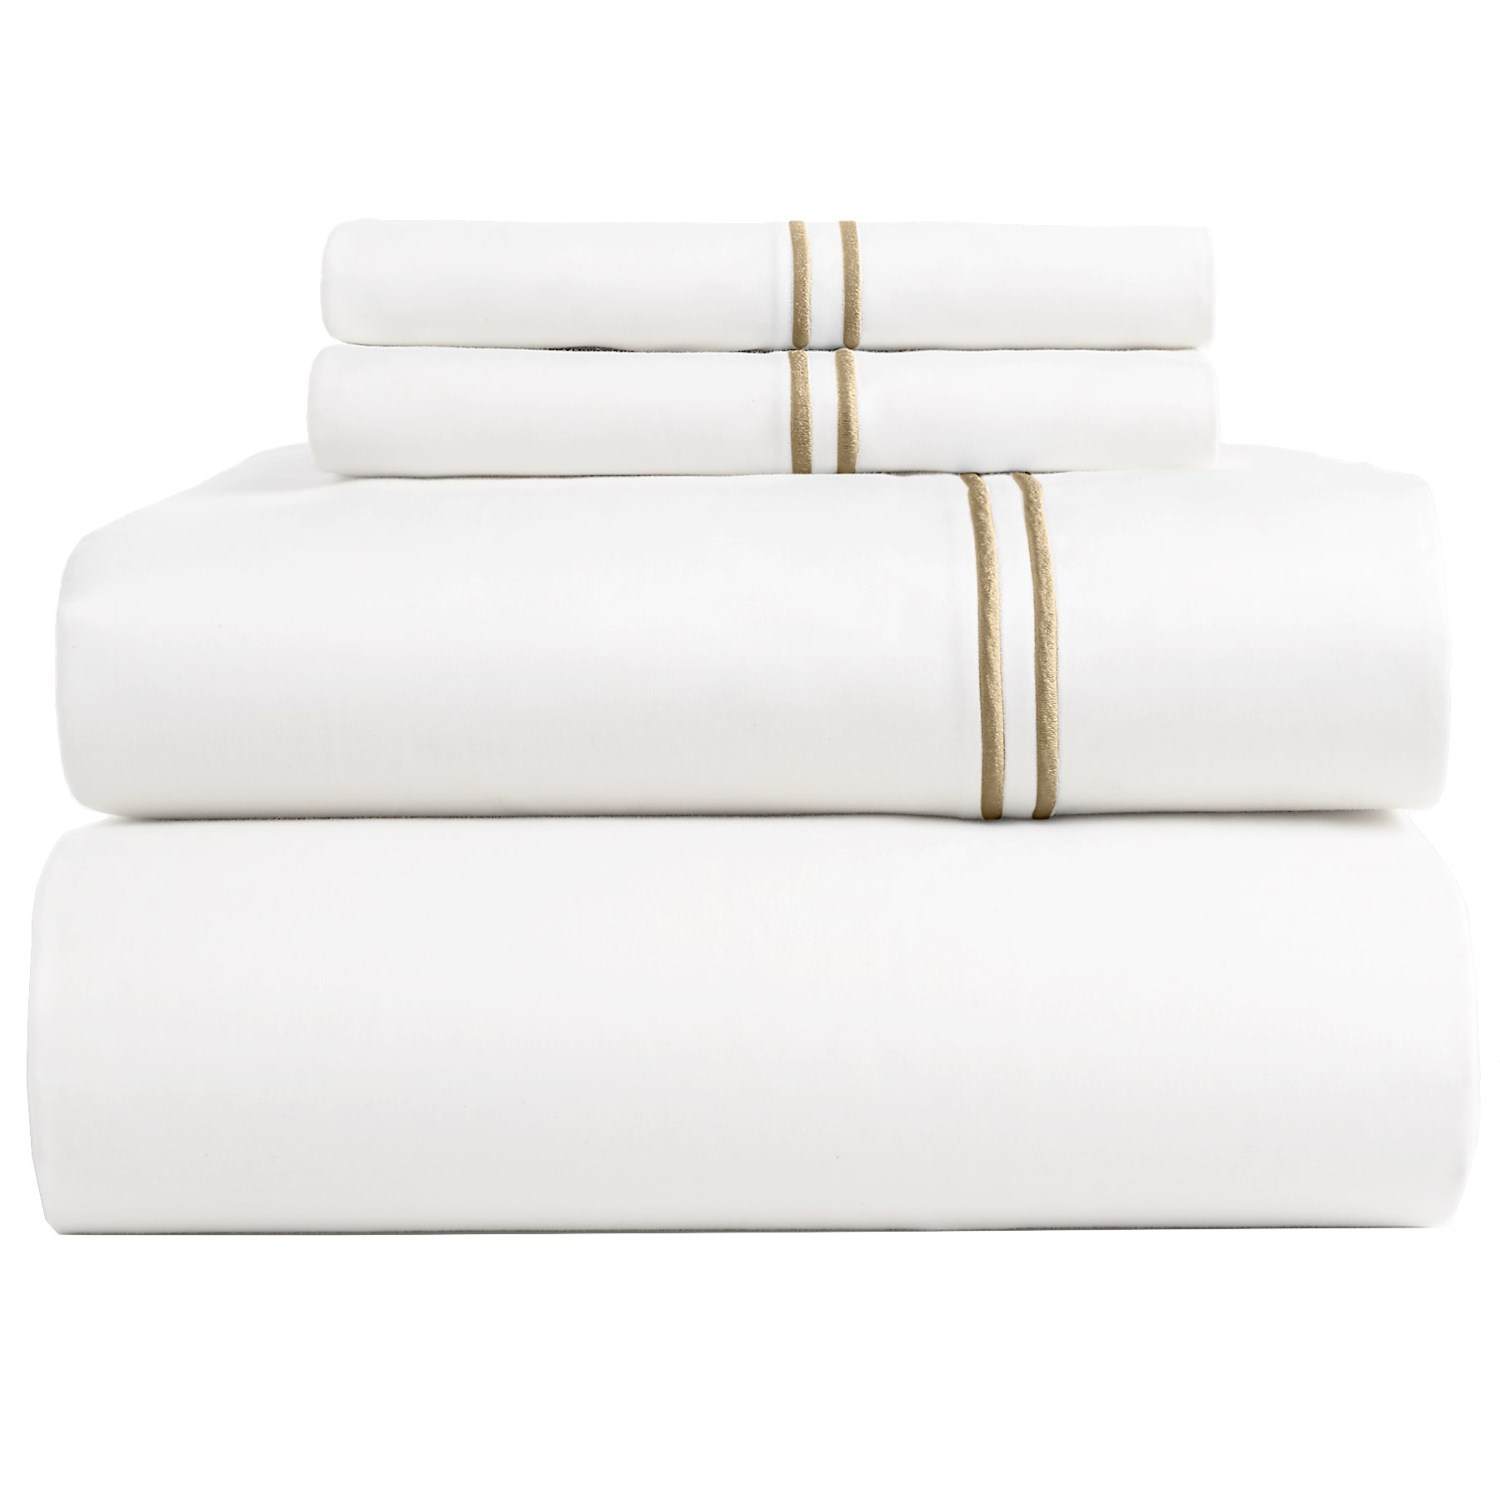 Cotton Sheets On Sale Bambeco Satin Stitch Sateen Organic Cotton Sheet Set